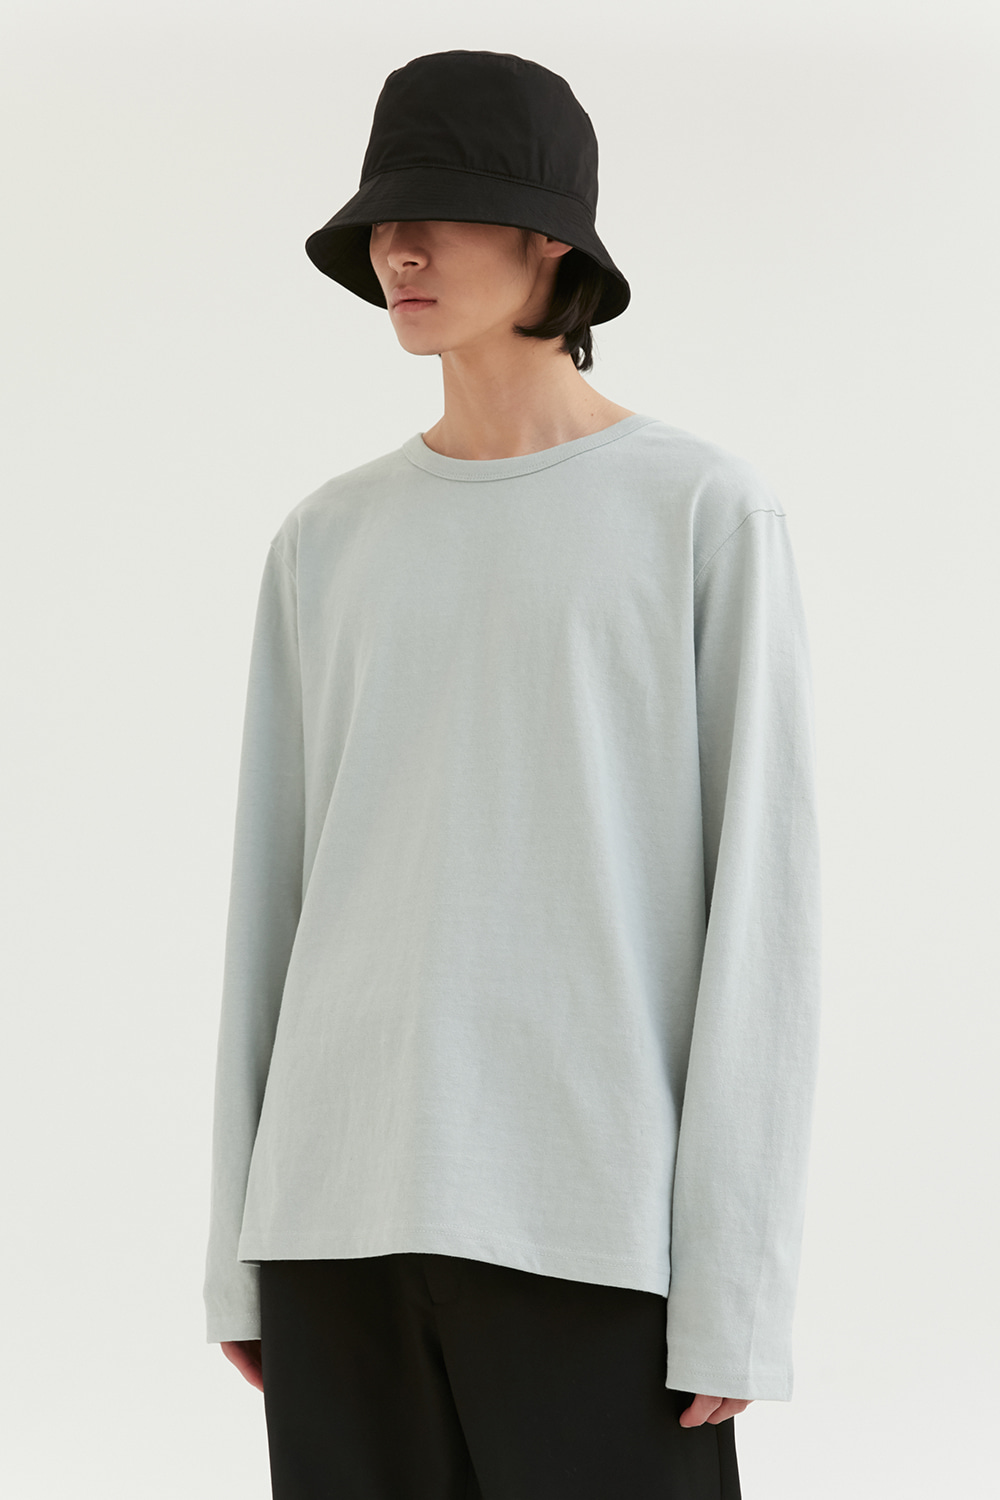 Long Sleeves Men [Light Mint]